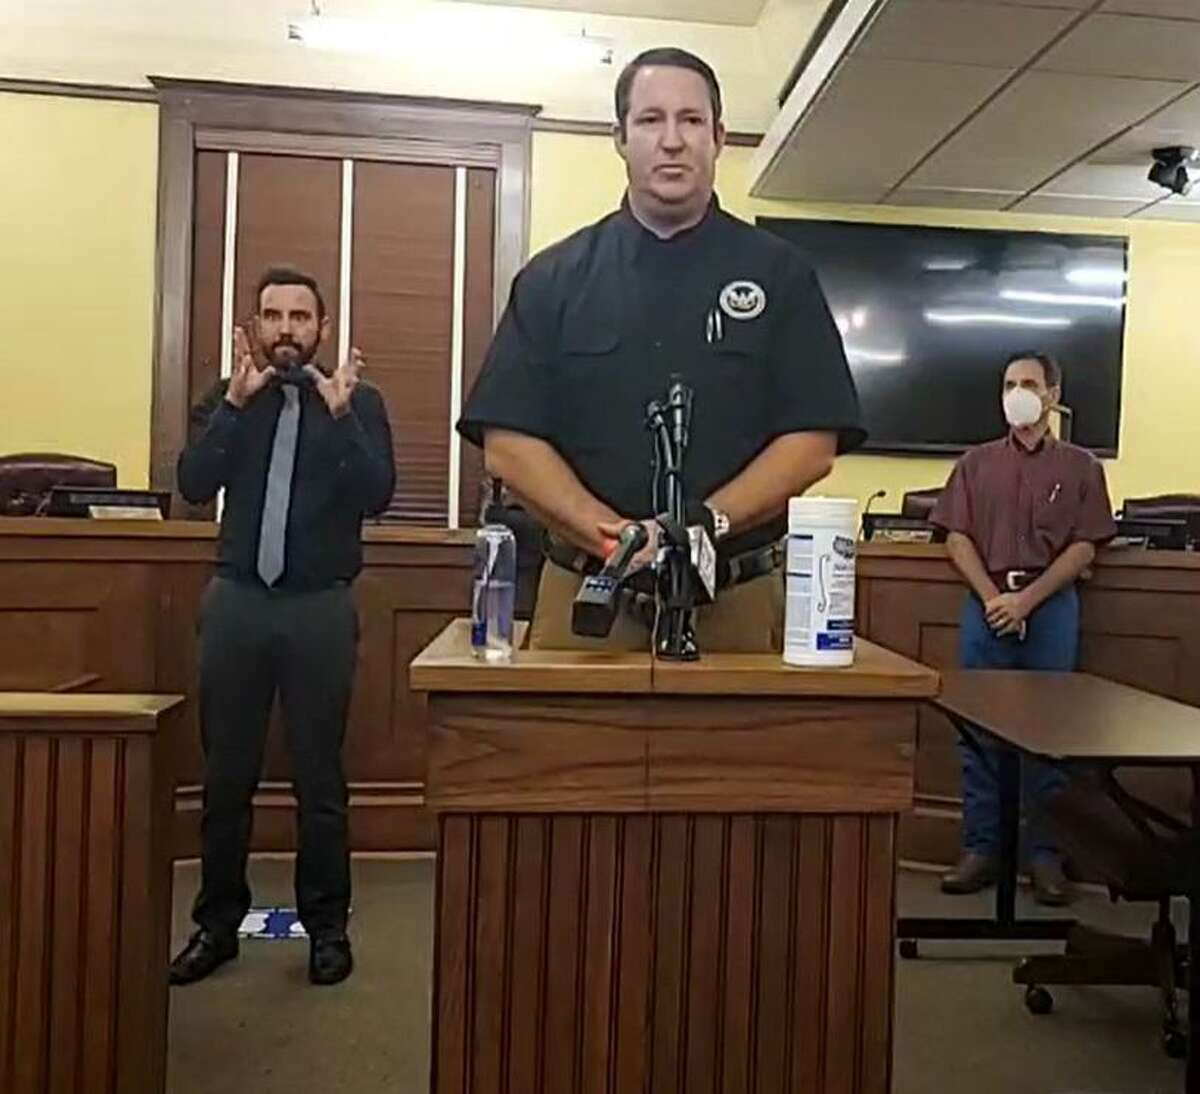 Fort Bend County Office of Emergency Management Coordinator Mark Flathouse answers questions during a news conference Monday, Sept. 21, 2020. Flathouse was joined by Fort Bend County Judge KP George and Drainage District Chief Engineer Mark Vogler to discussTropical Storm Beta.